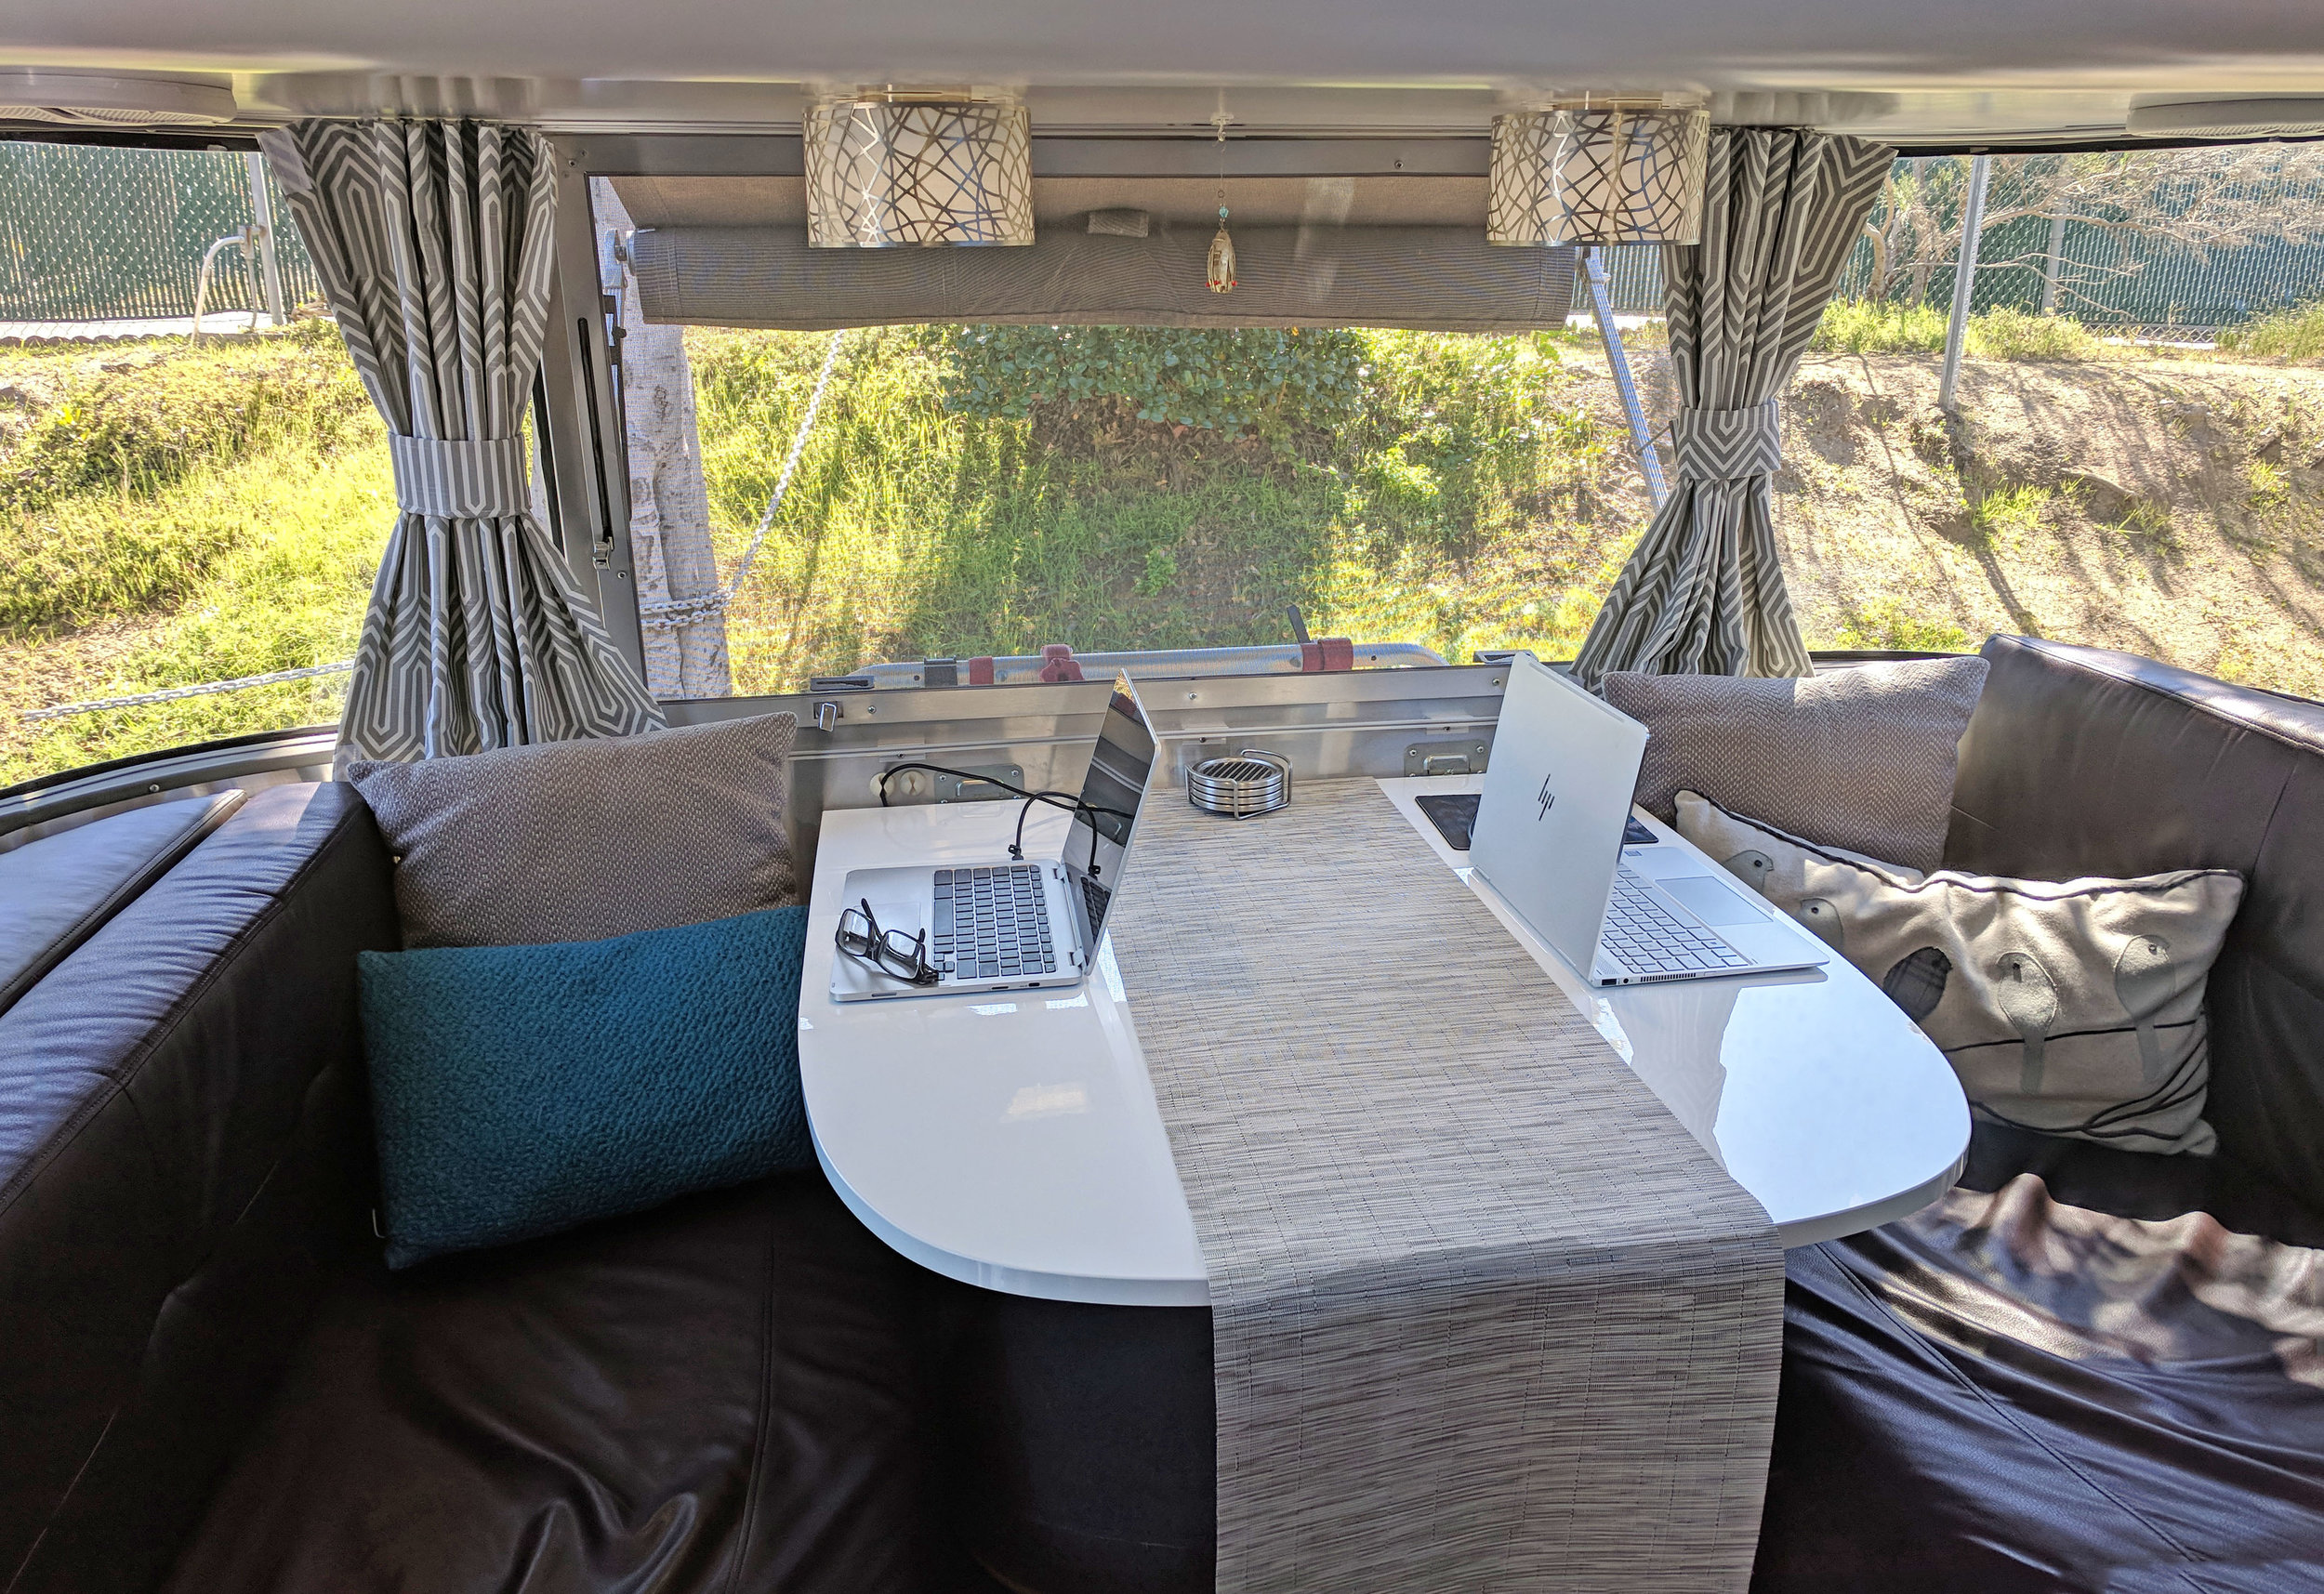 The Airstream is all spiffy and ready to go